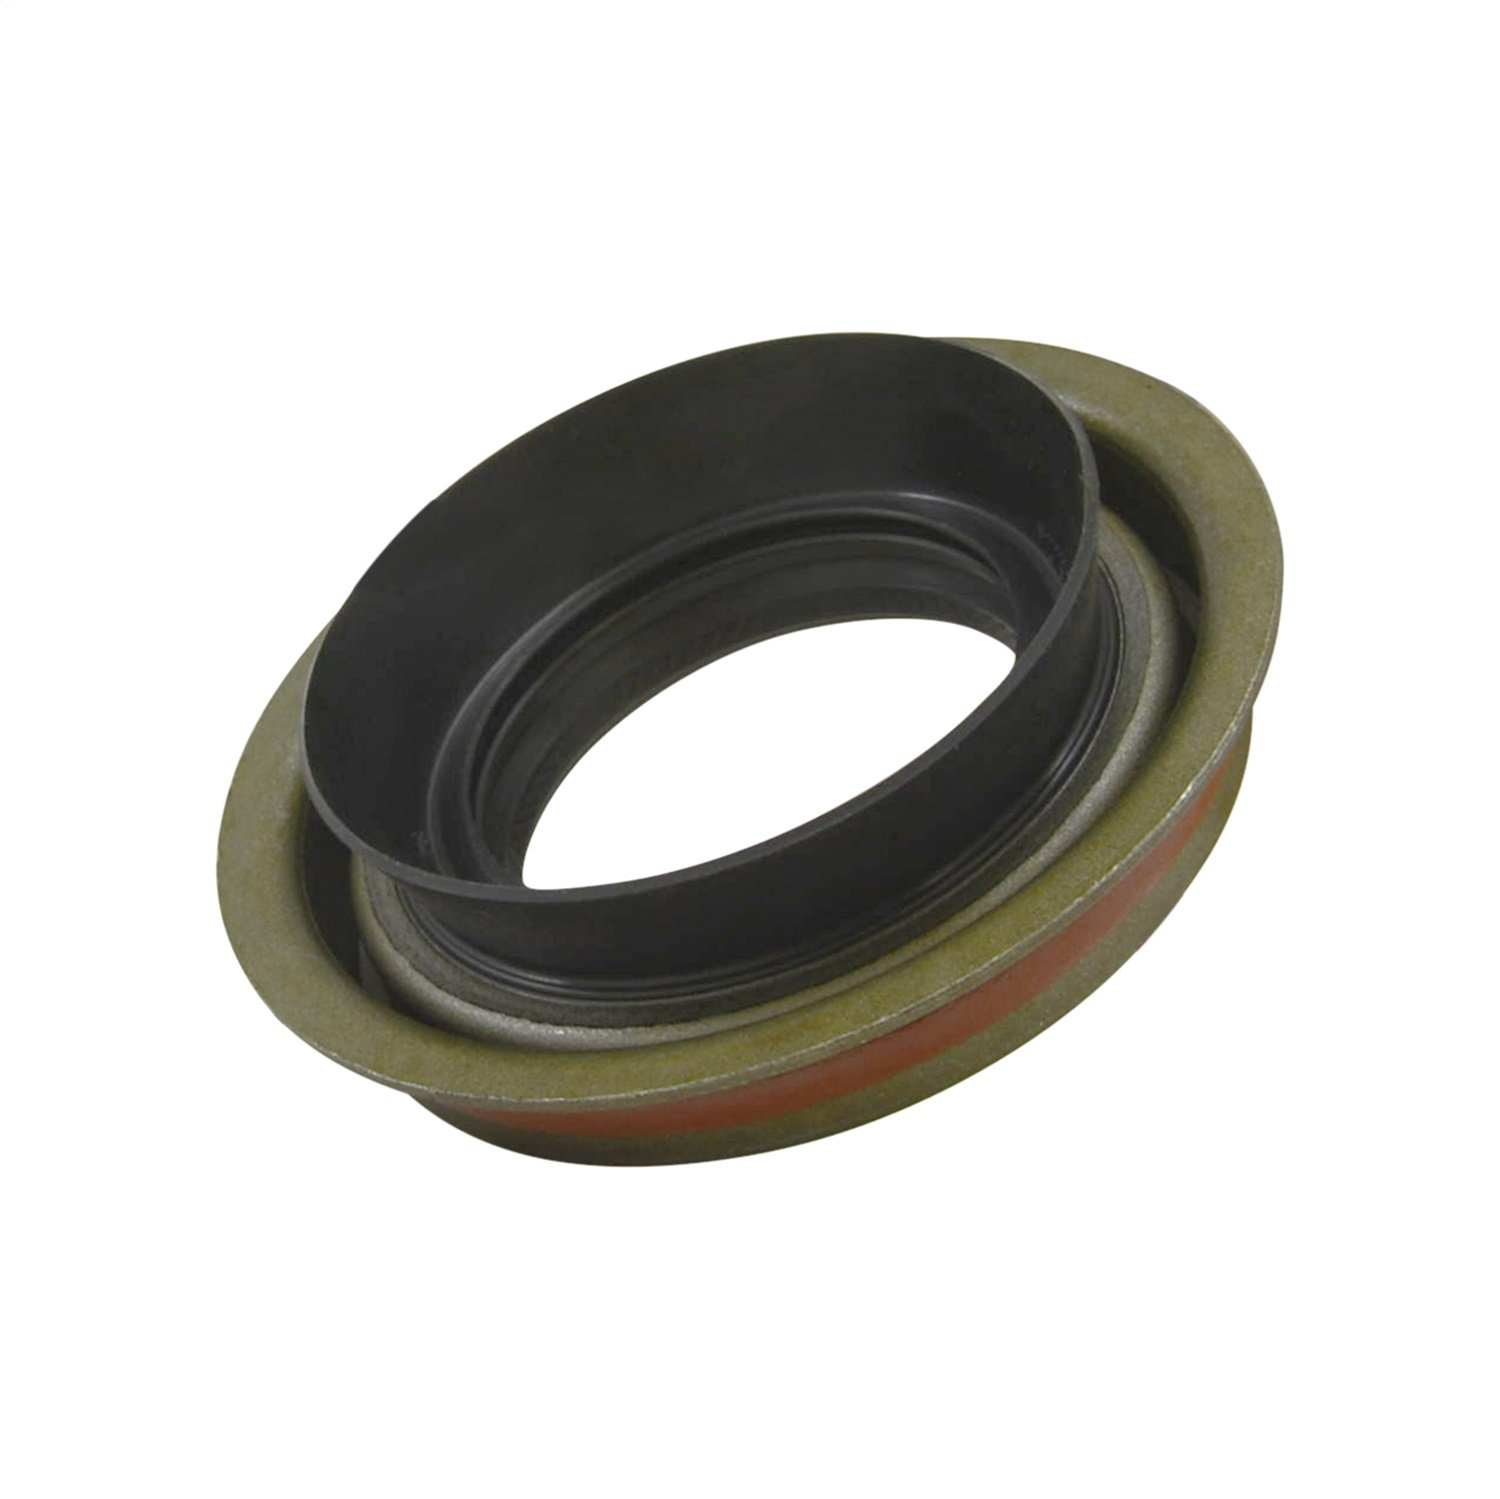 Yukon Gear & Axle (YMS710429) Right Inner Stub Axle Seal for Ford Explorer/AMC Model 35 Front Differential